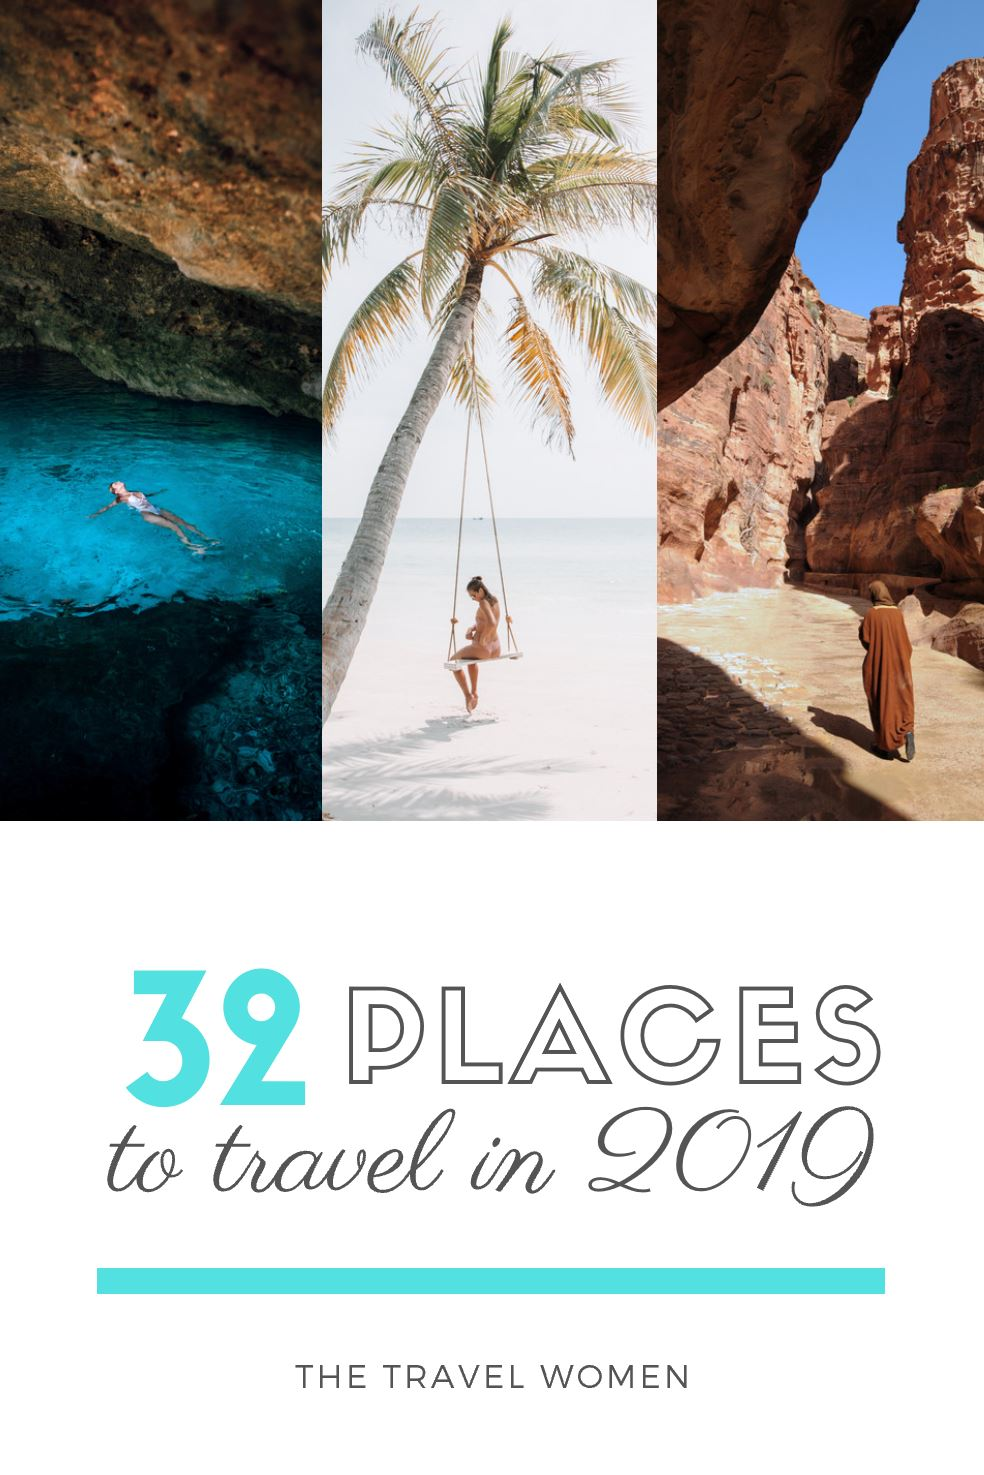 32 Places to Travel in 2019